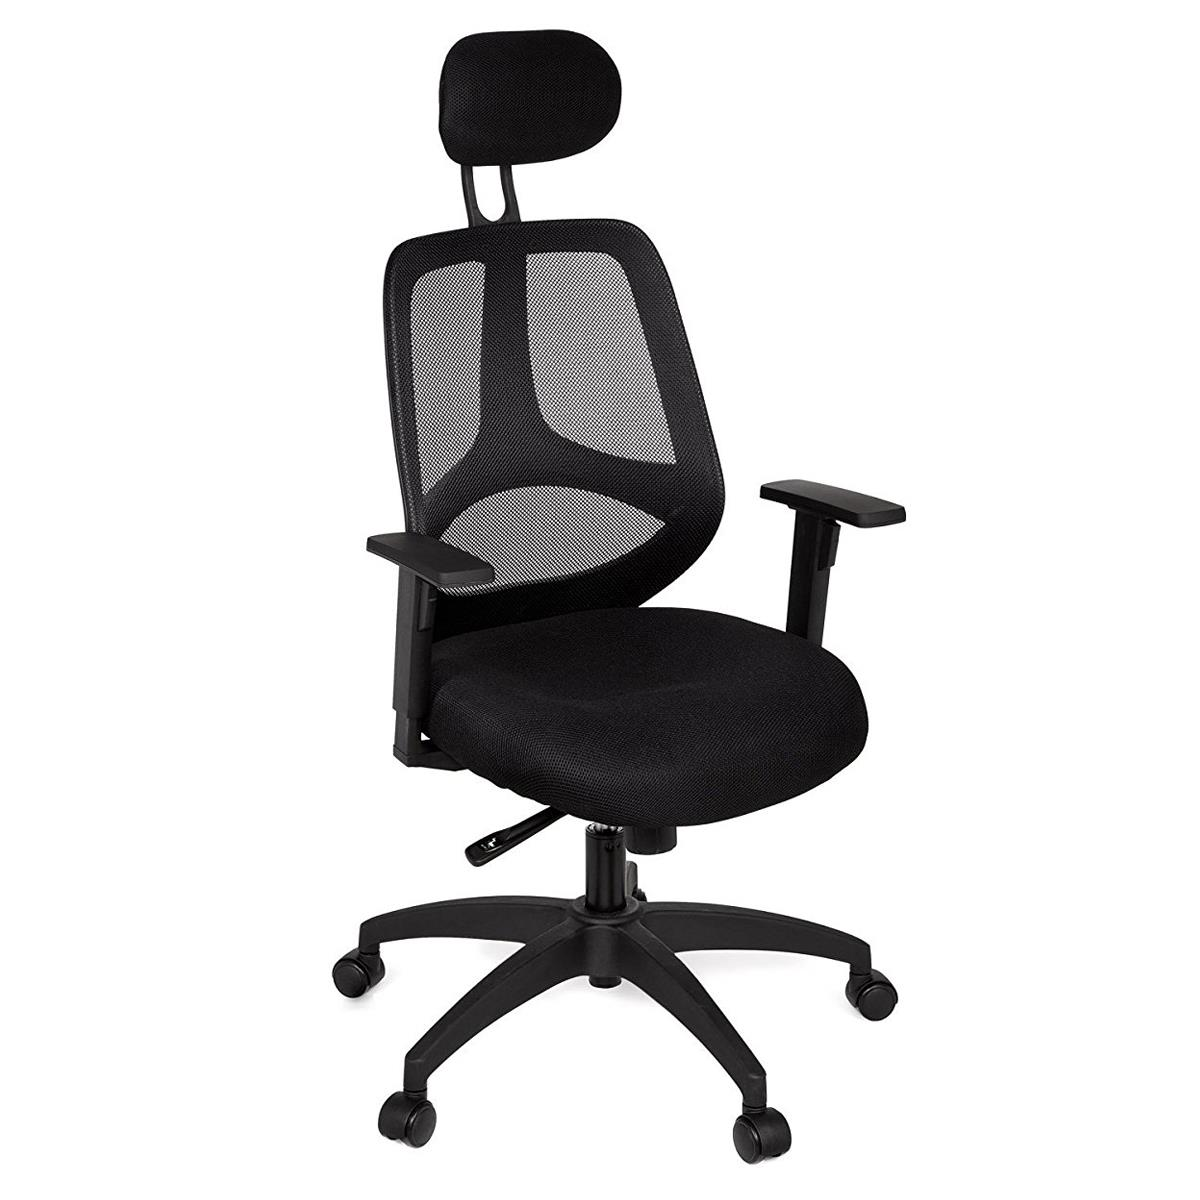 Silla Ergonómica FLORENCIA, Apoyabrazos Regulables, Reposacabezas Regulable, en Malla transpirable color Negro